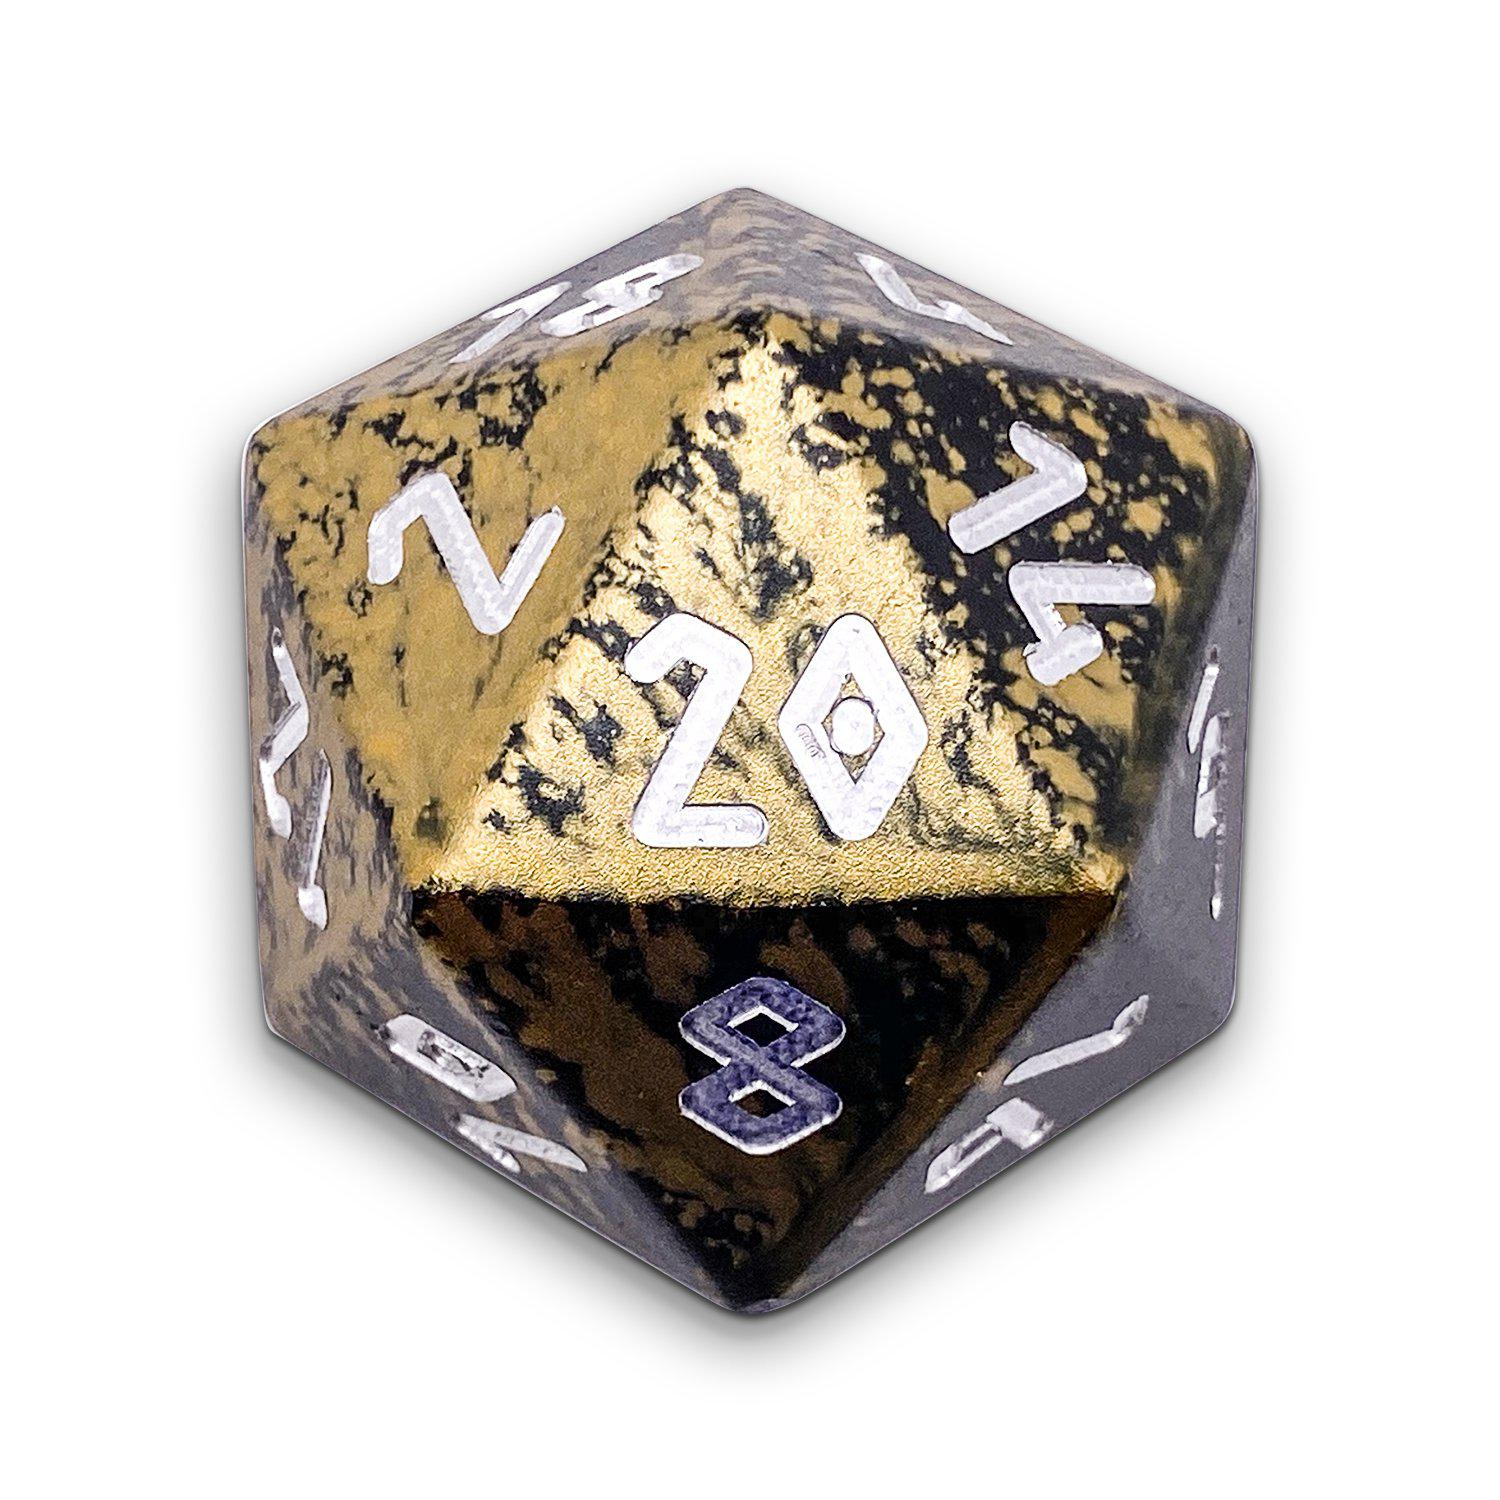 The Great Void - Wondrous Boulder® 55mm D20 6063 Aircraft Grade Aluminum Metal Die